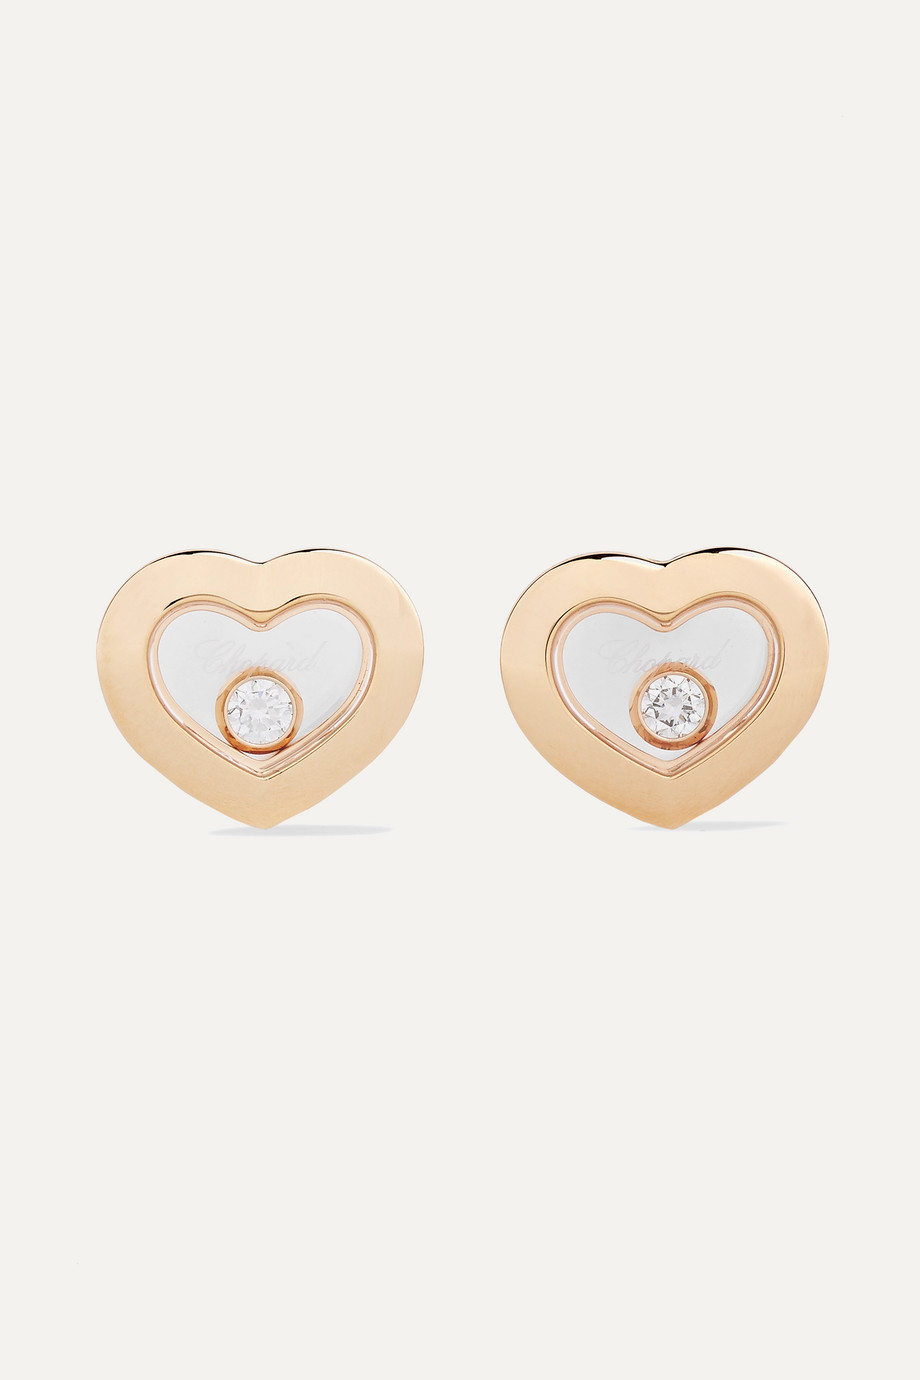 Chopard + NET SUSTAIN Happy Diamonds 18-karat gold diamond earrings